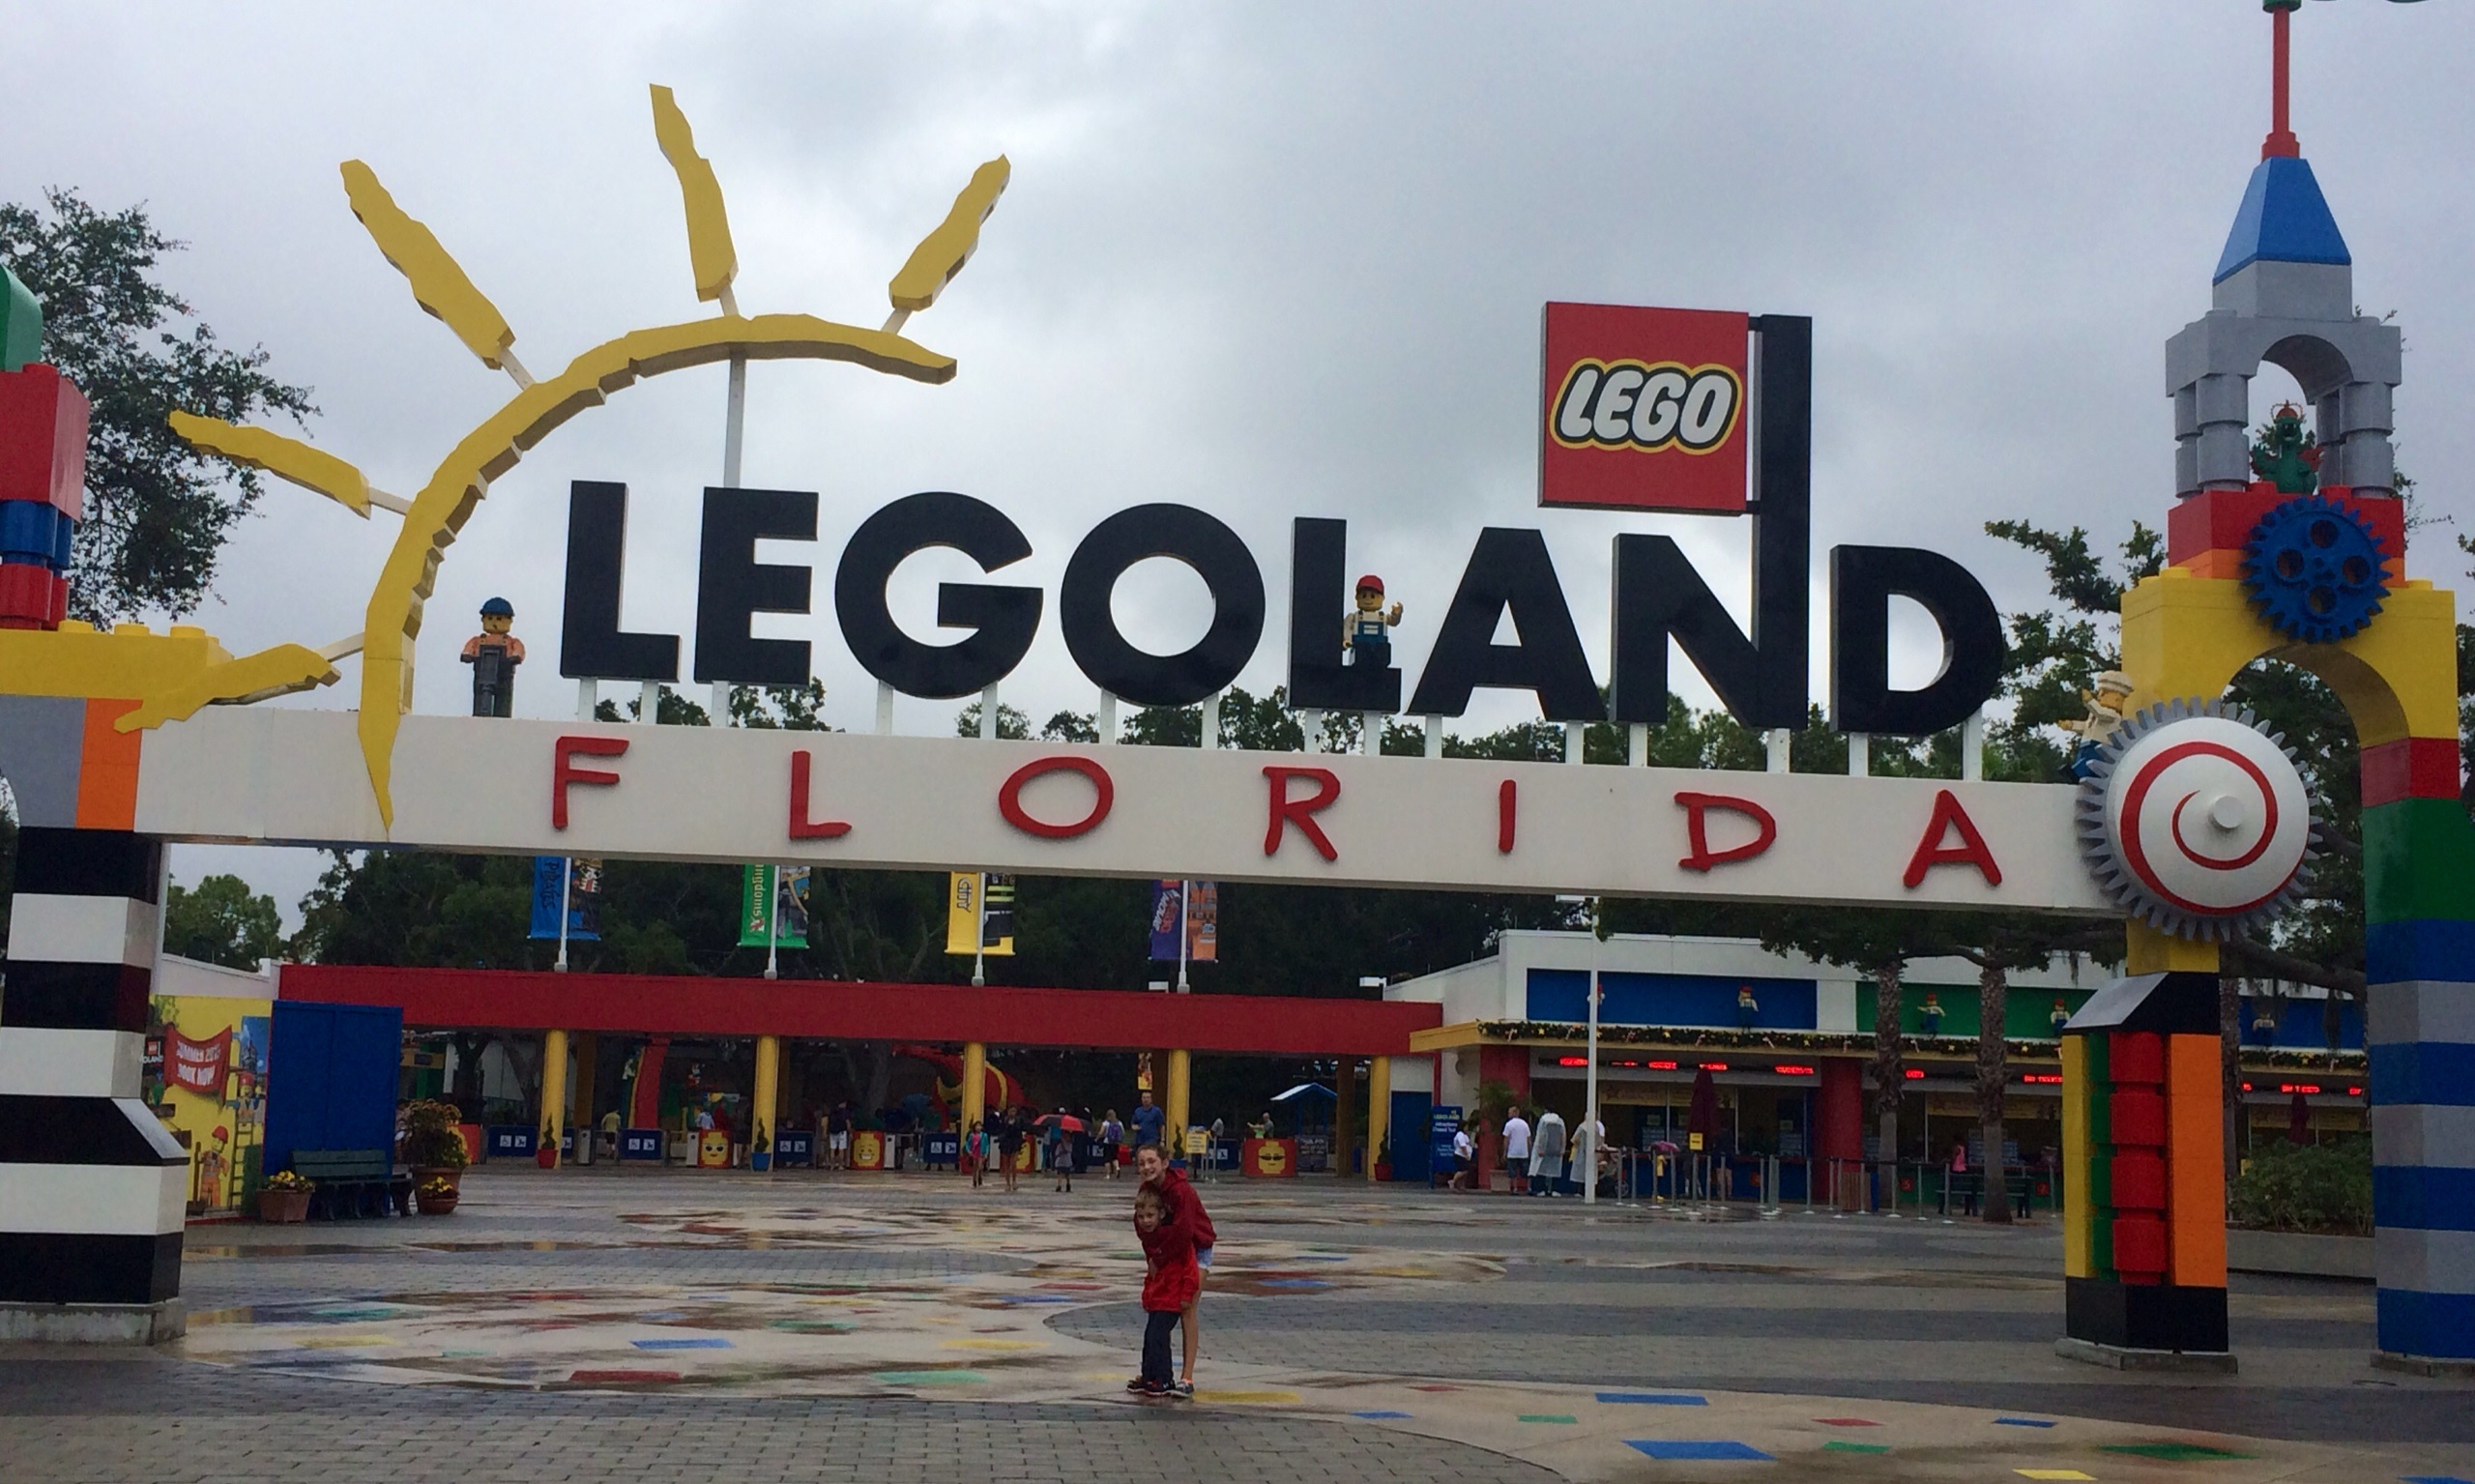 Watch How to Visit Legoland Florida video